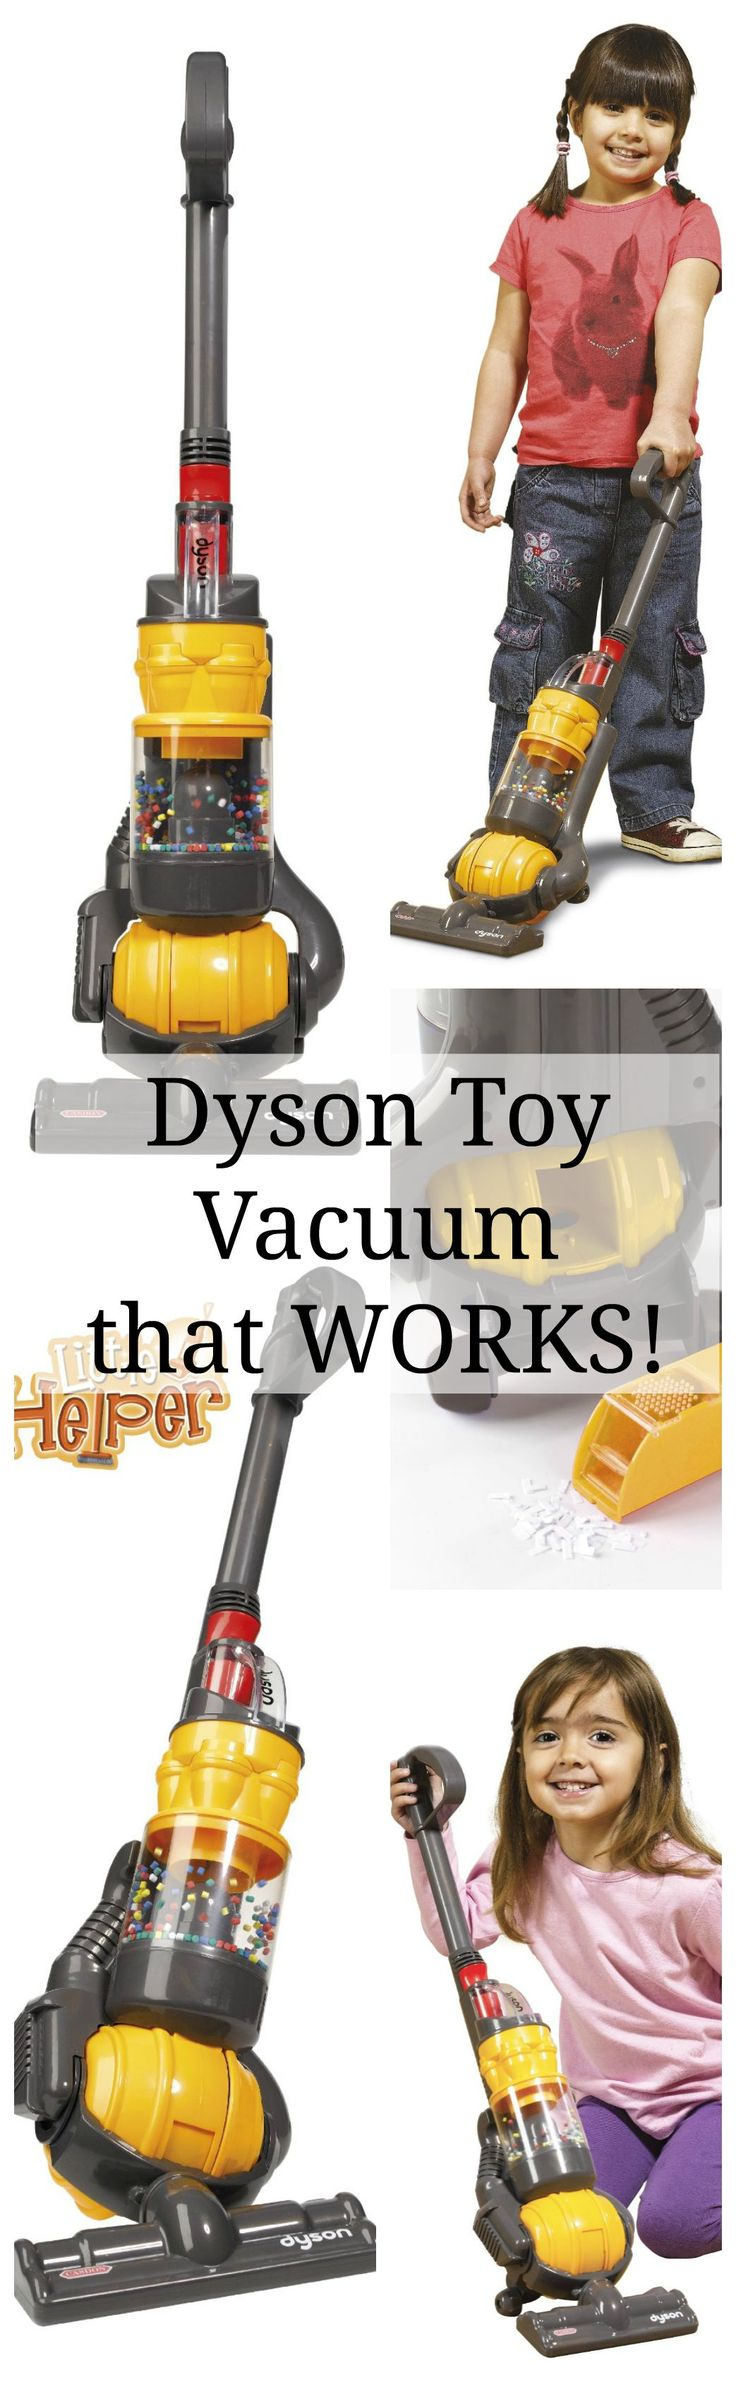 Dyson Toy Vacuum Cleaner. Is your little helper always reaching for the big heavy vacuum? This is the answer you've been looking for! A toy Dyson Vacuum that works! Your little helper will be helping when they reach for their toy vacuum cleaner!